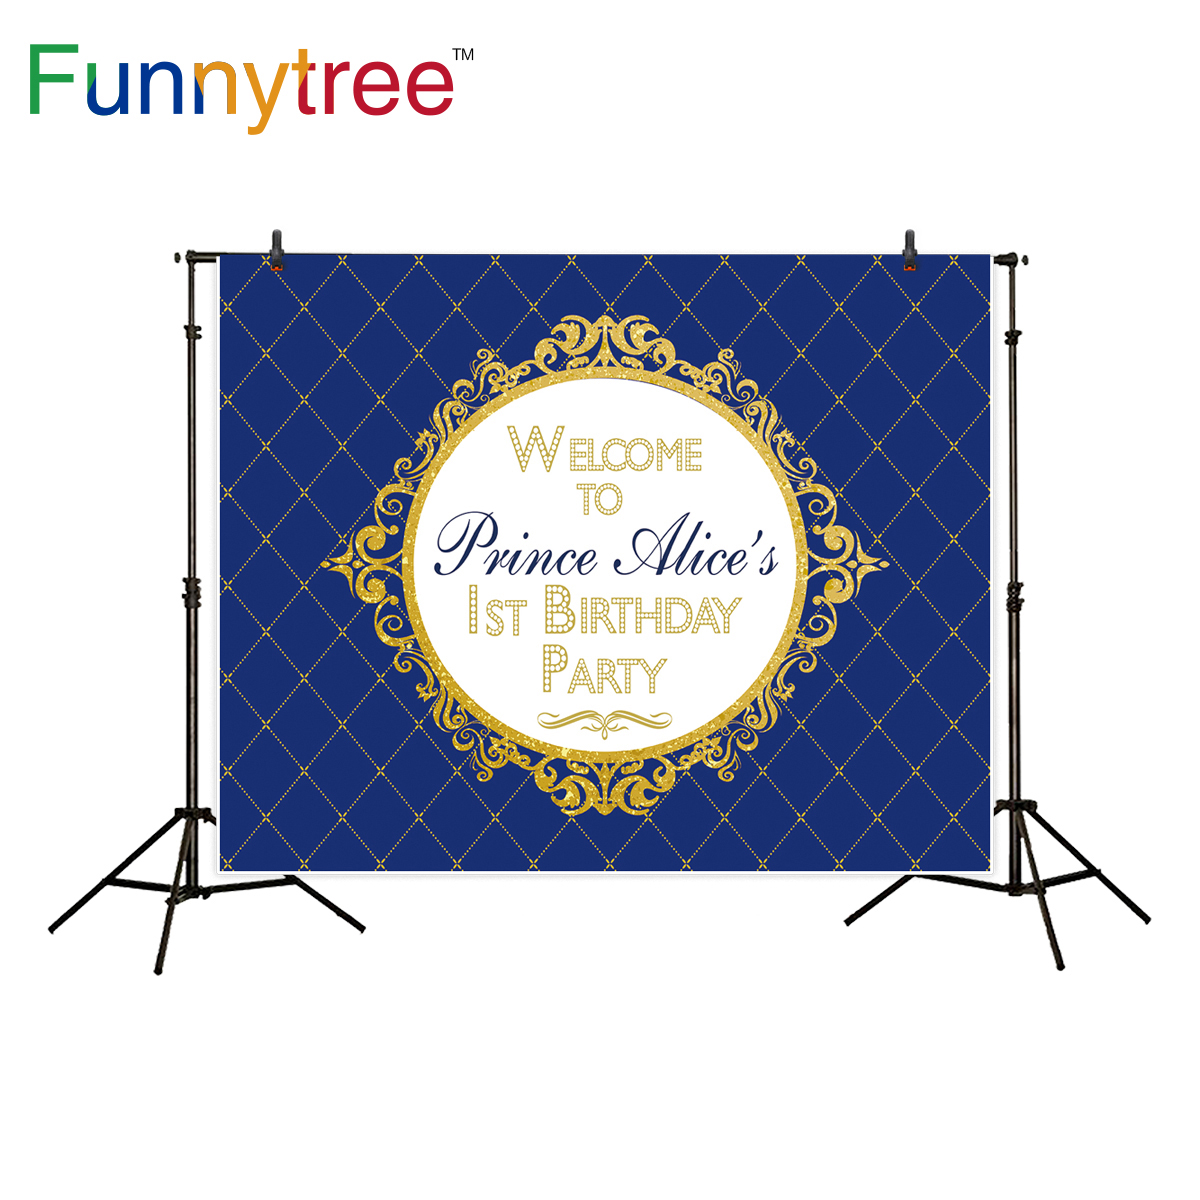 Funnytree backdrop photography studio prince royal blue classic frame birthday party luxury background photocall photo prop photography children s background birthday cake gift present greeting photocall customize cute studio photo prop